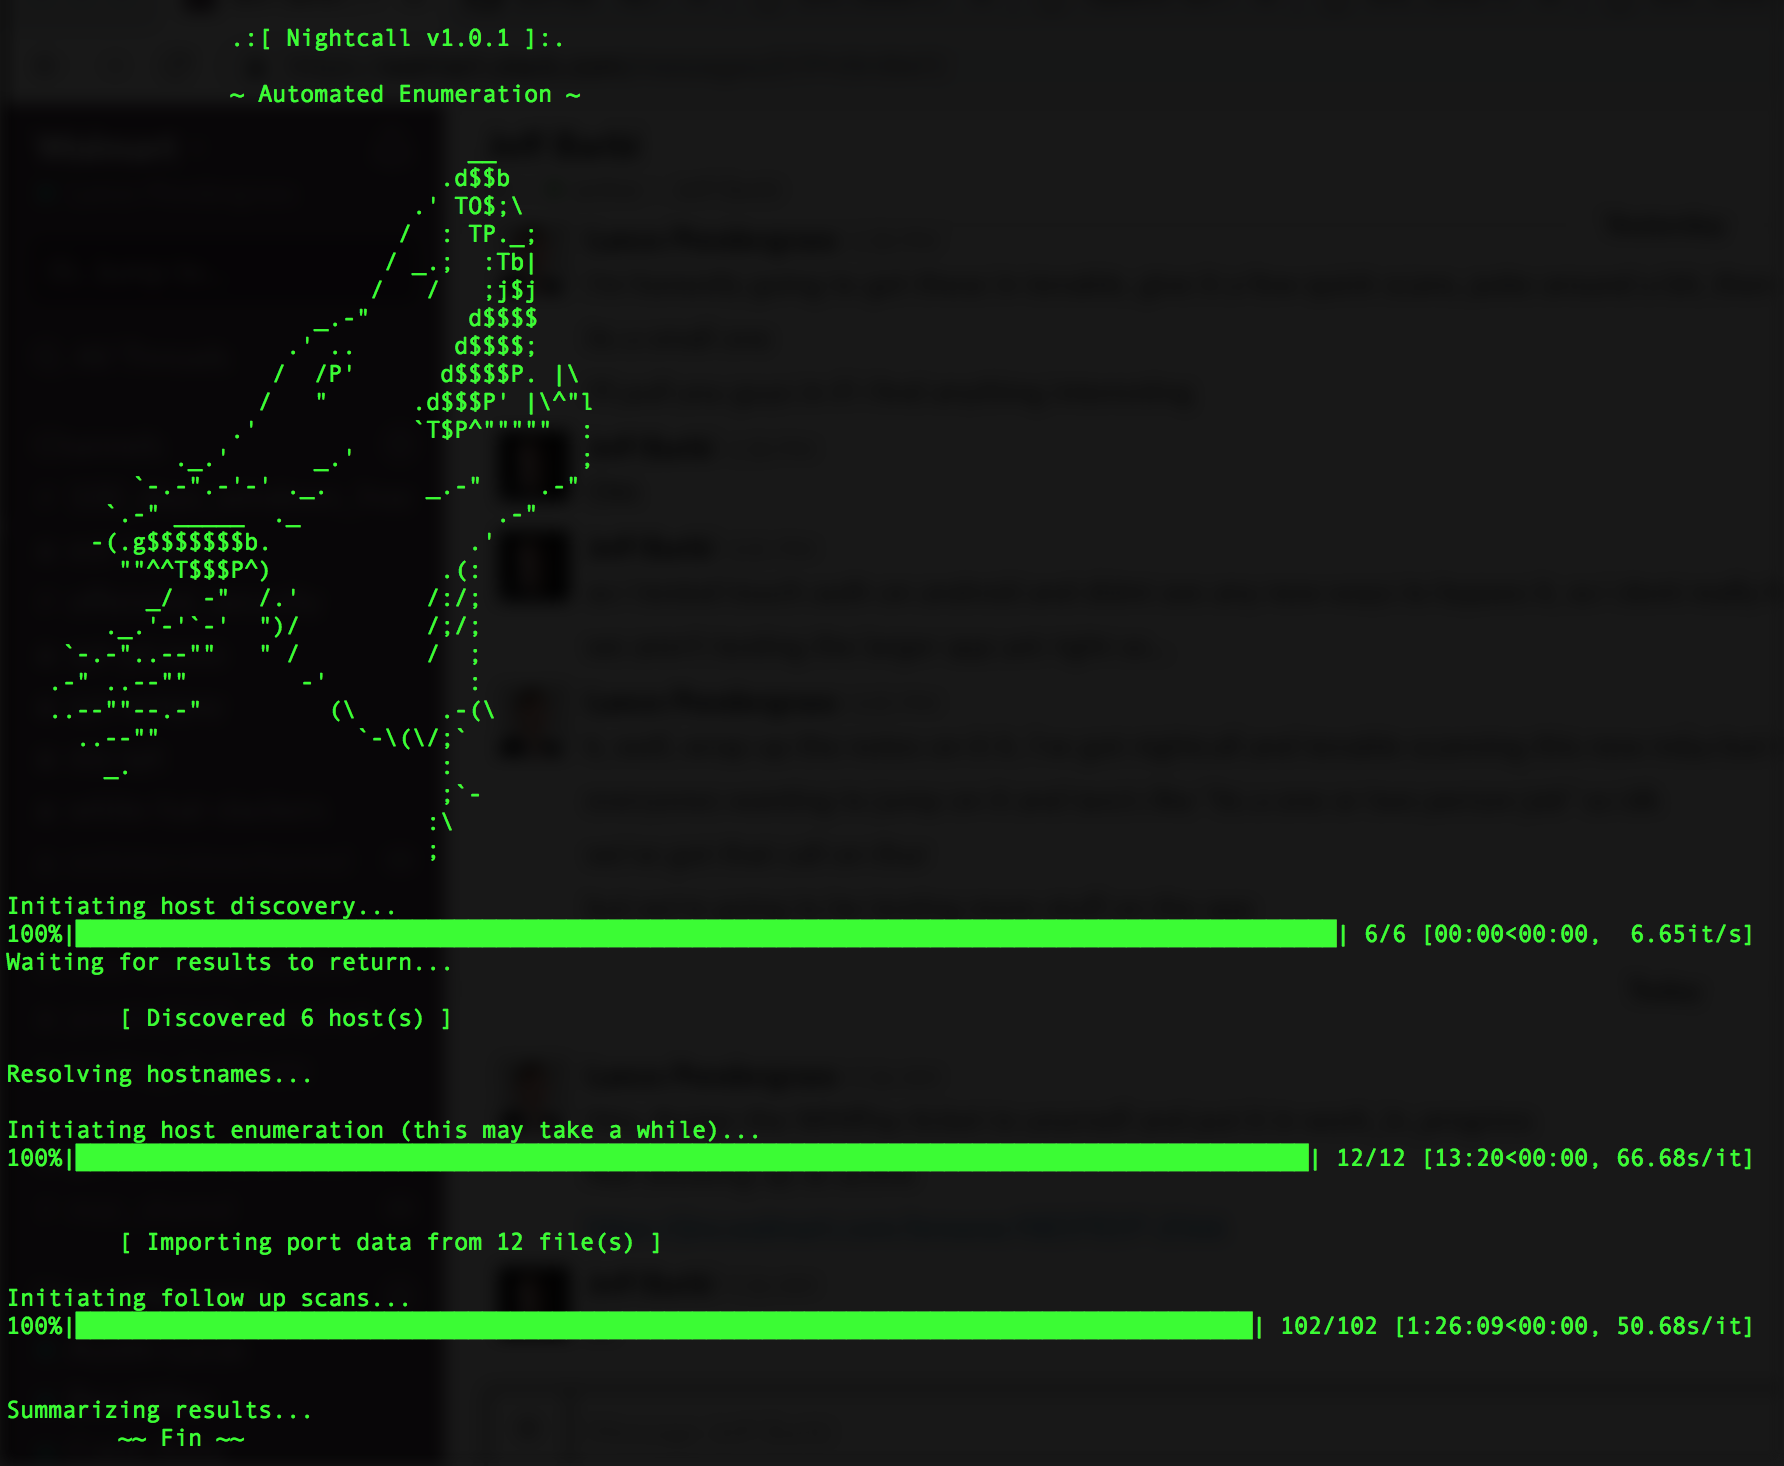 nightcall: Automated Enumeration Script for Pentesting